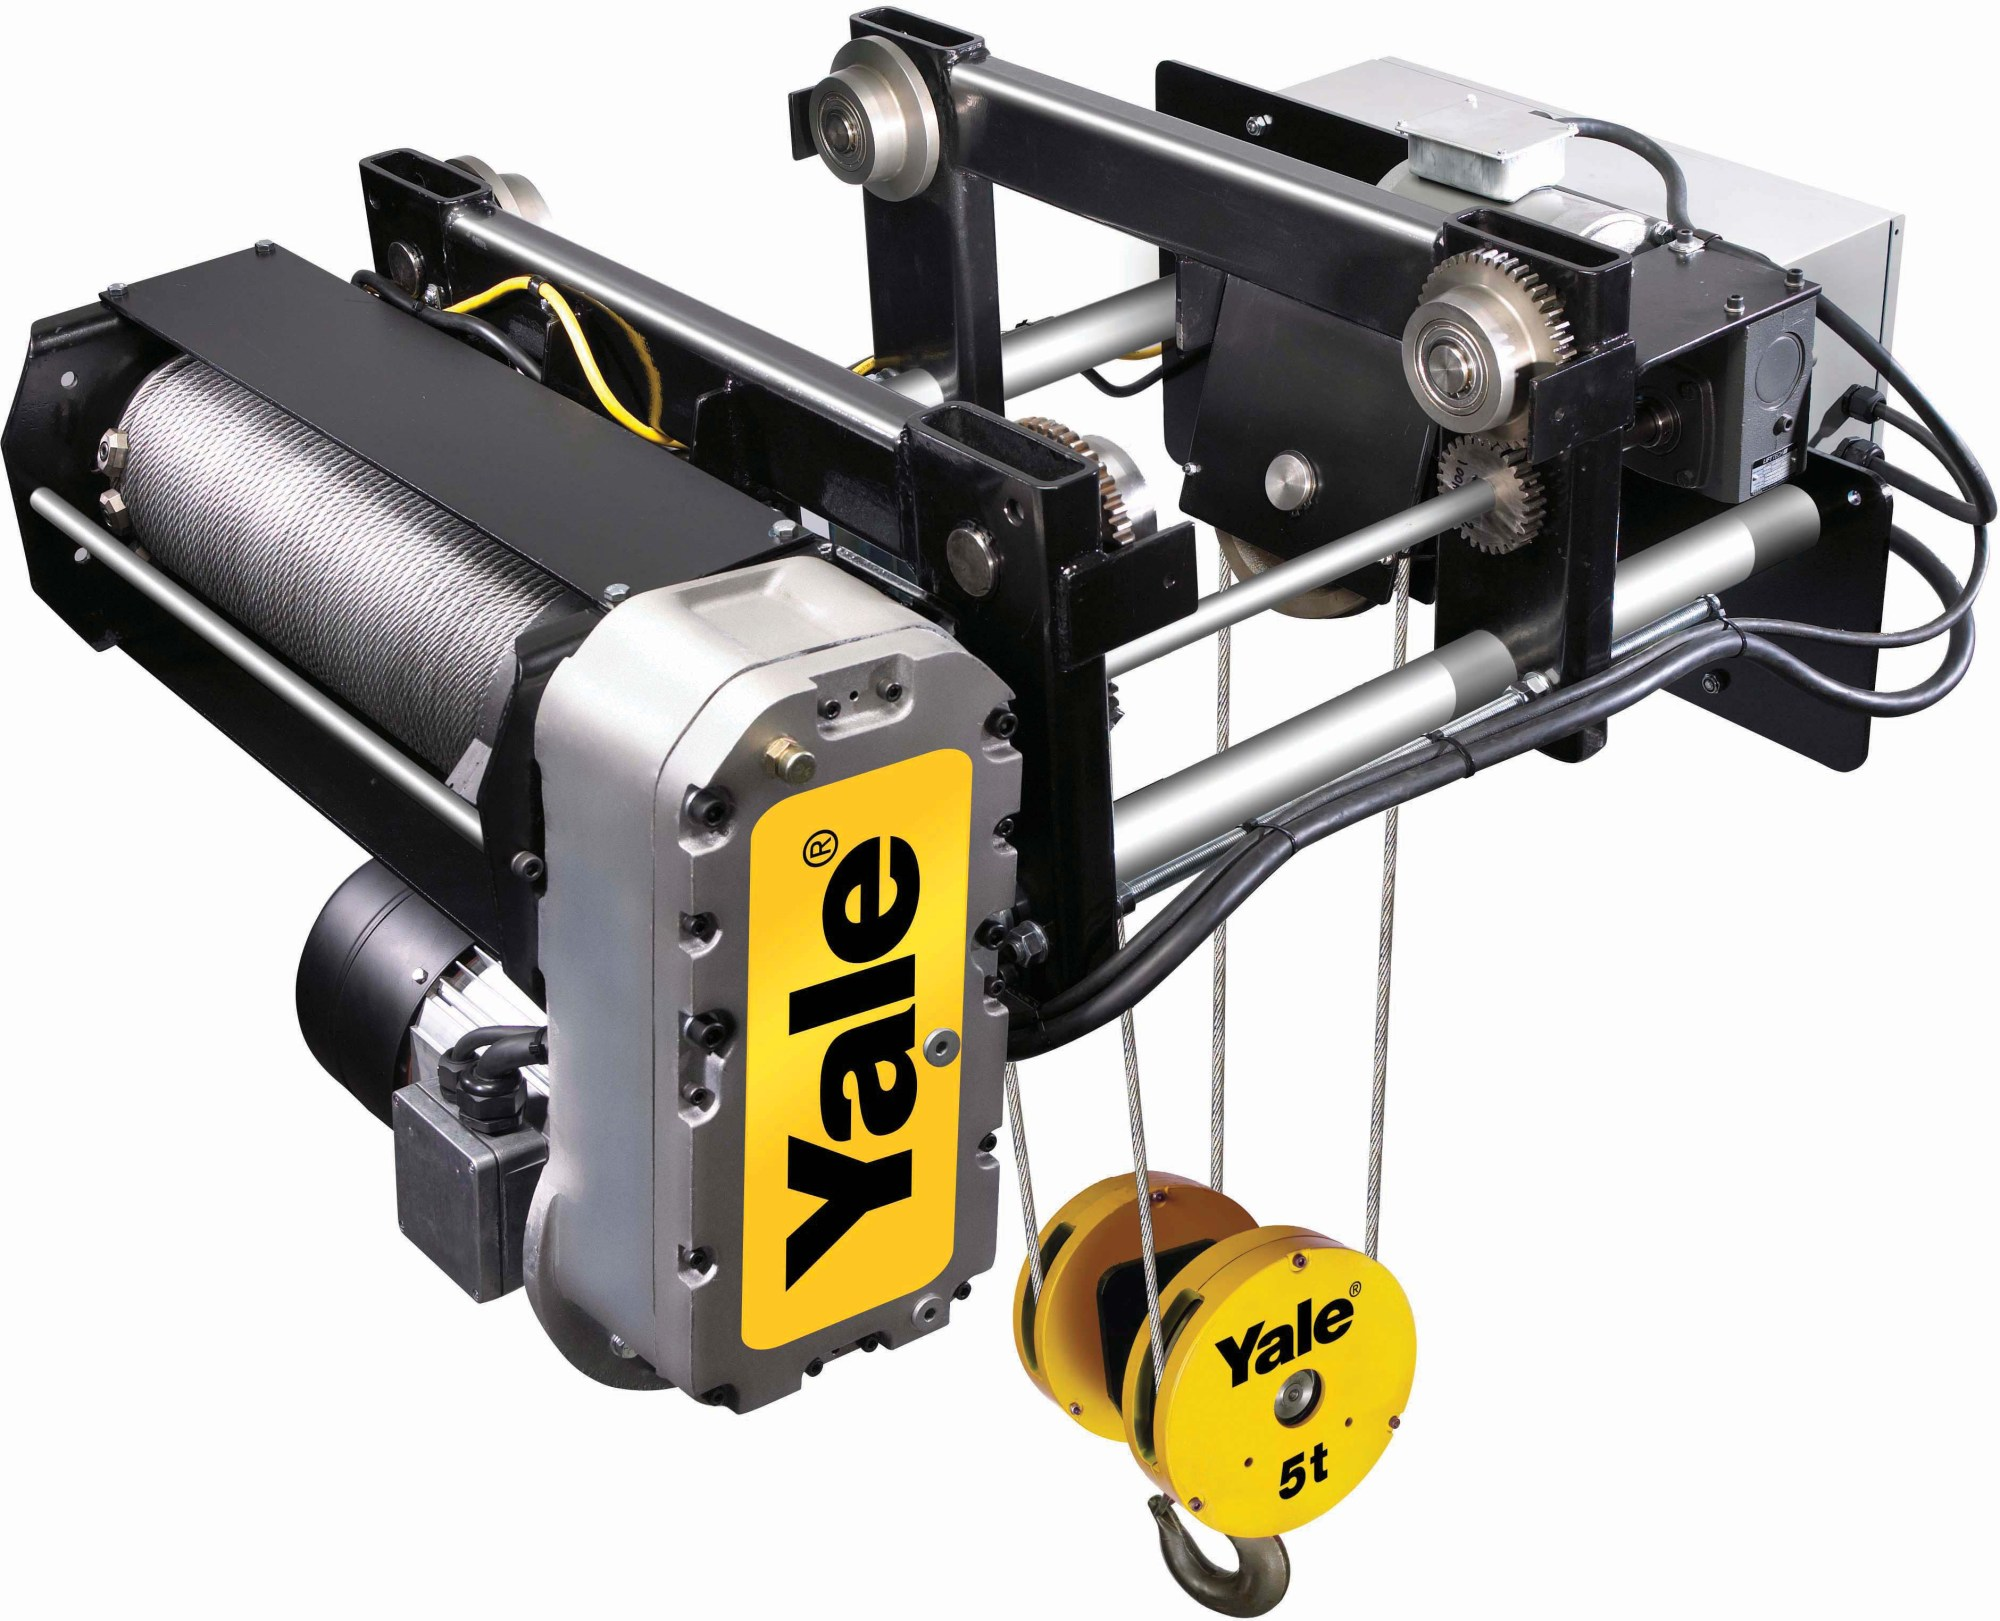 hight resolution of upper block limit switch now standard on yale global king and shaw box world series